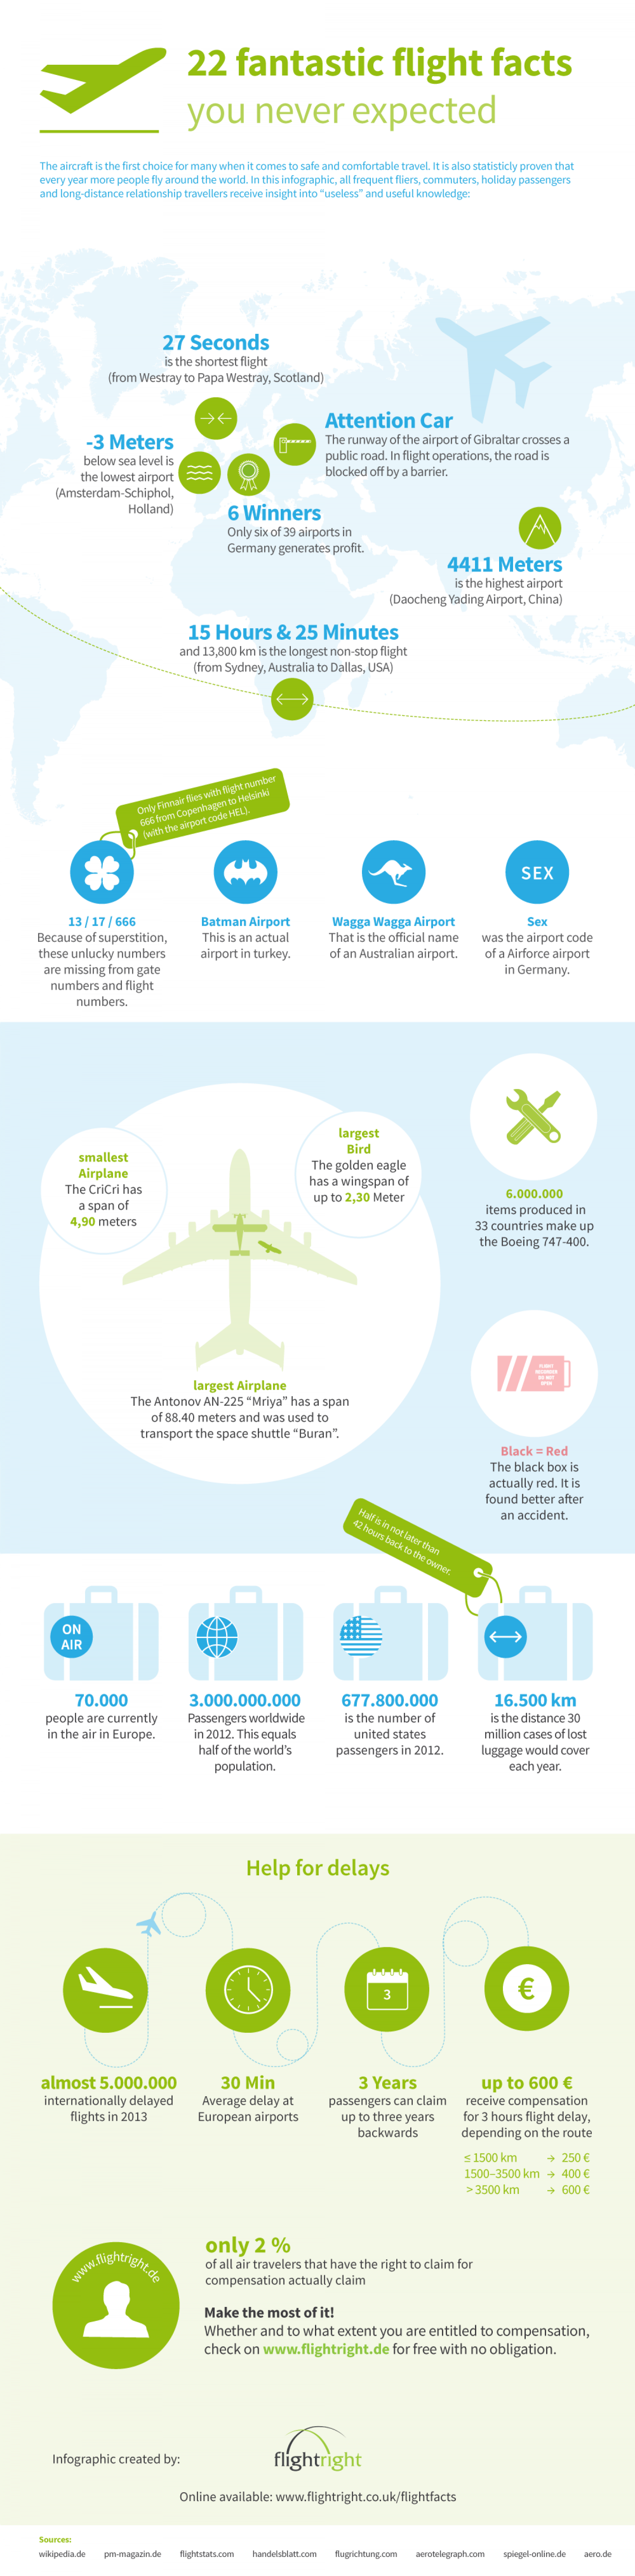 22 Fantastic Flight Facts You Never Expected Infographic